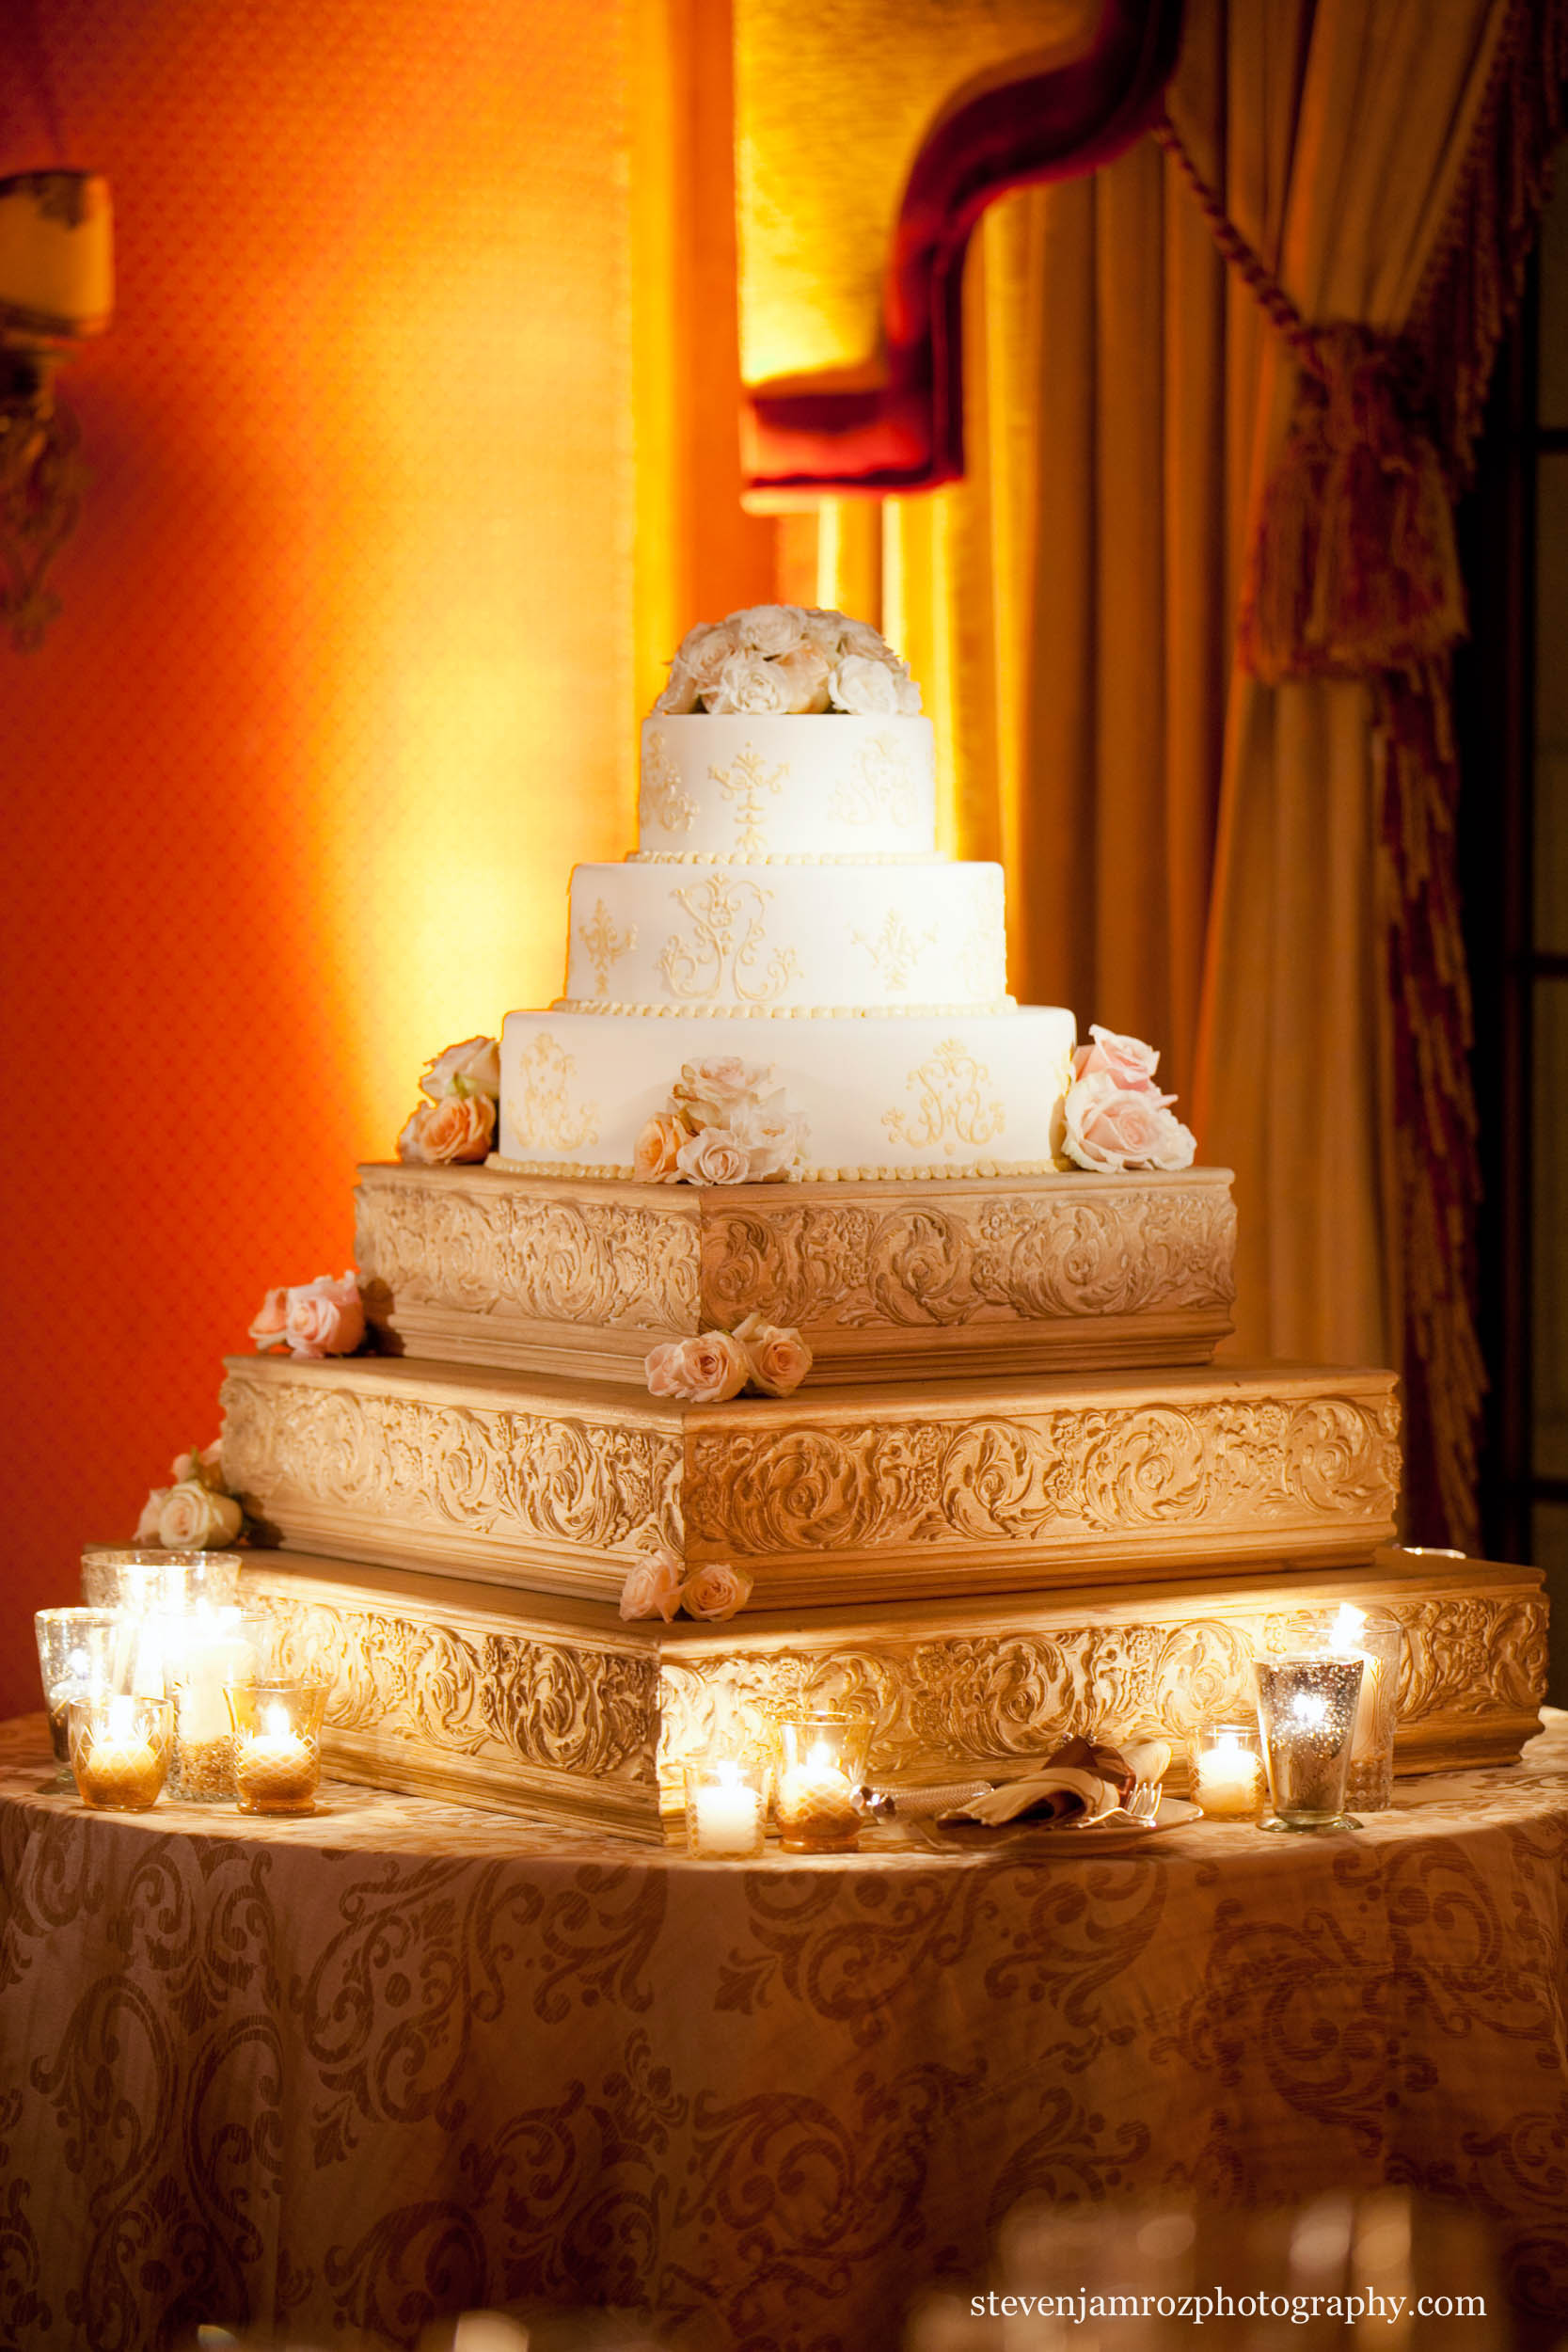 three-tier-wedding-cake-lighting-steven-jamroz-photography-0523.jpg